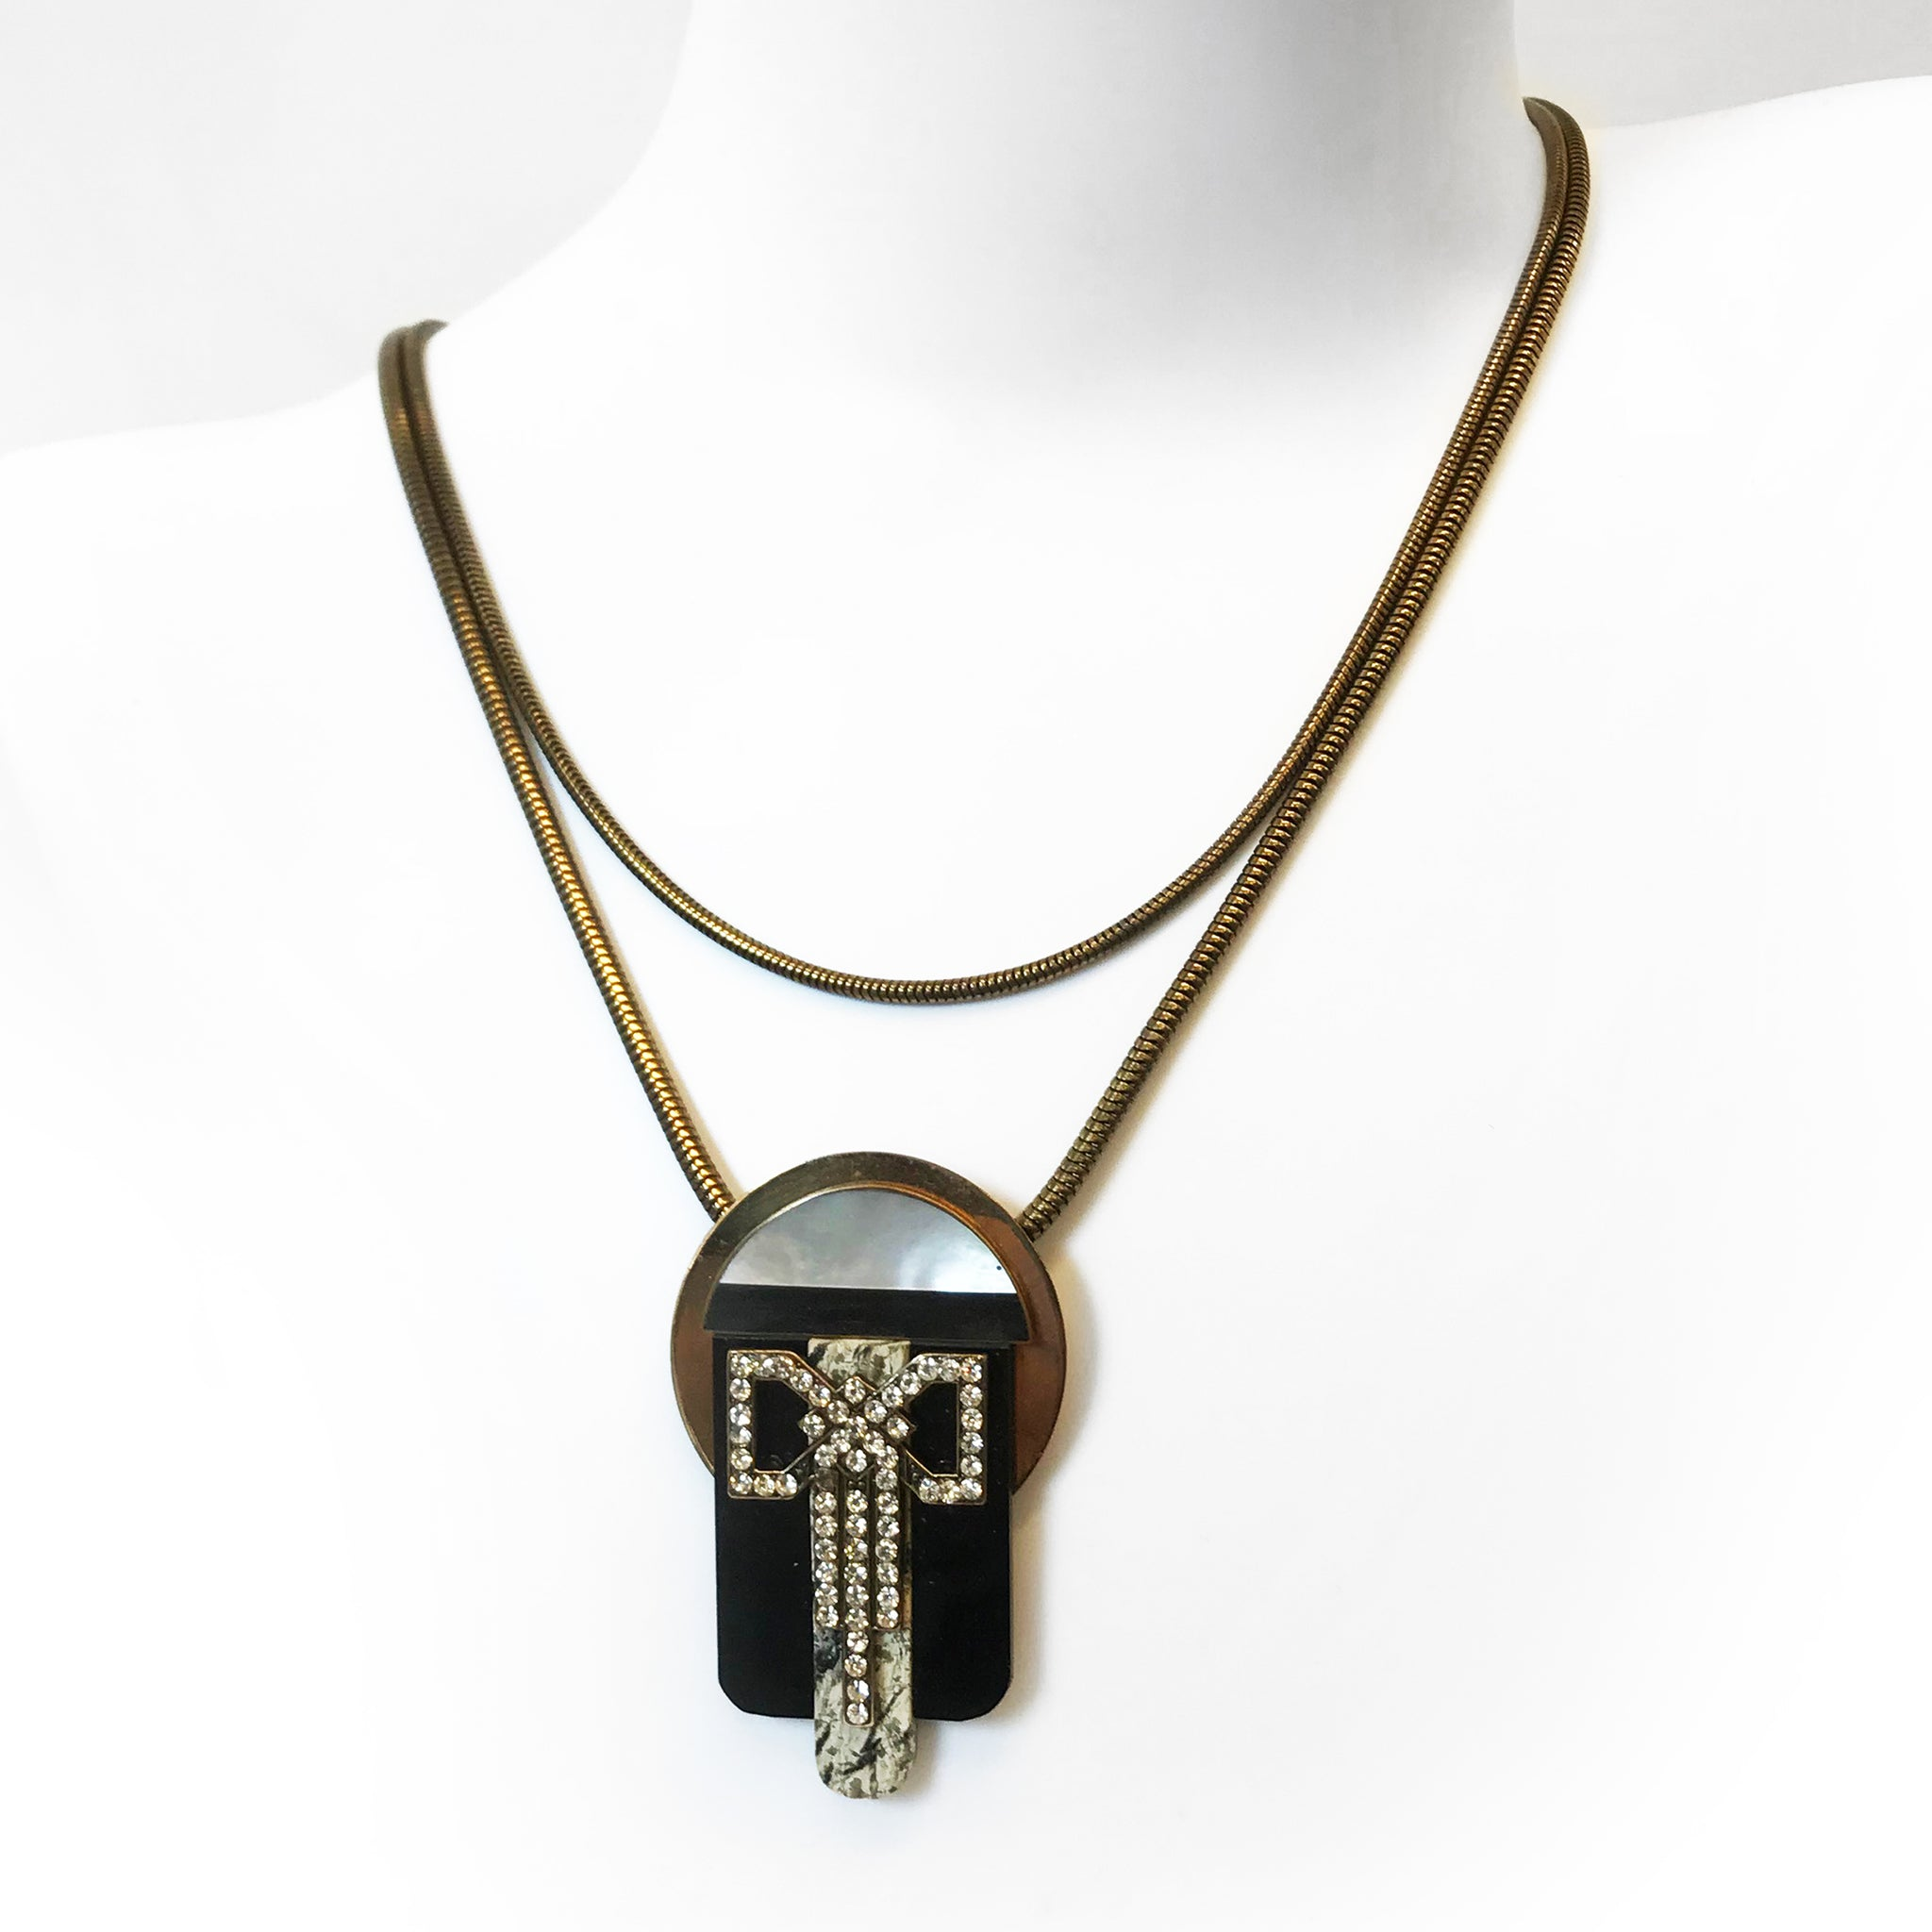 Vintage Deco Style, Ermani Bulatti Necklace. Find this and other Vintage jewellery for sale at Intovintage.co.uk. Into Vintage